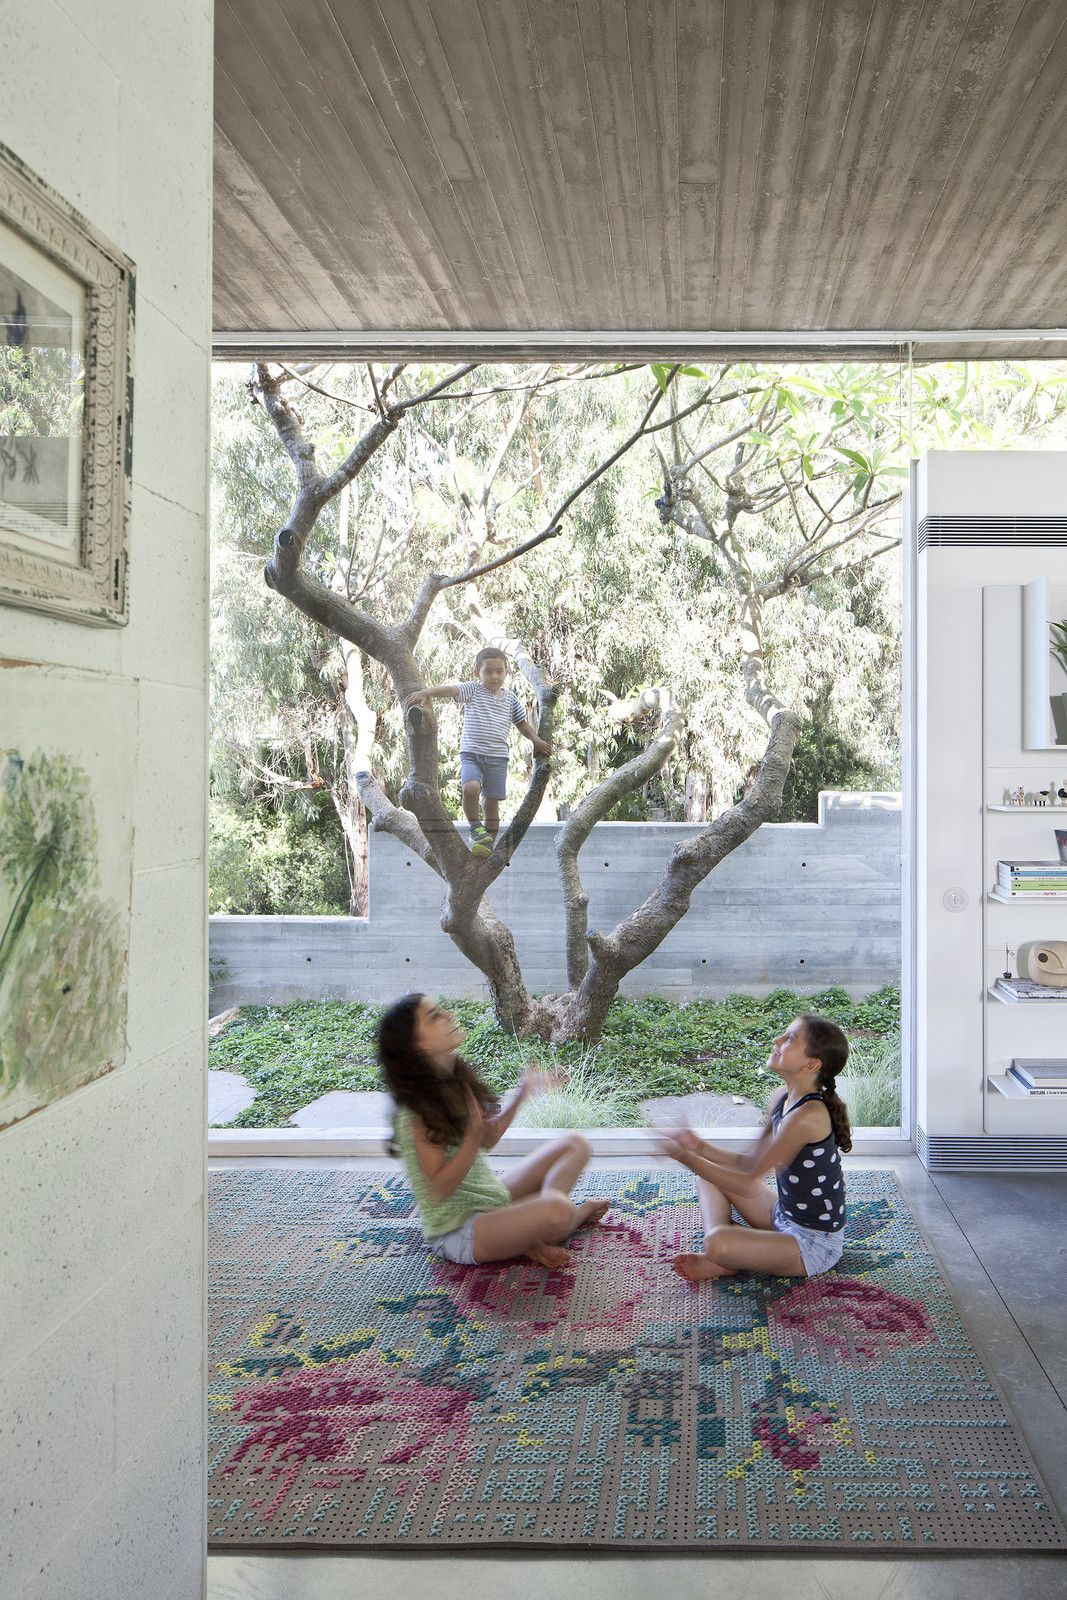 An Architect's Bright and Airy Family Home Thrives Within a Brutalist Concrete Structure - Photo 10 of 13